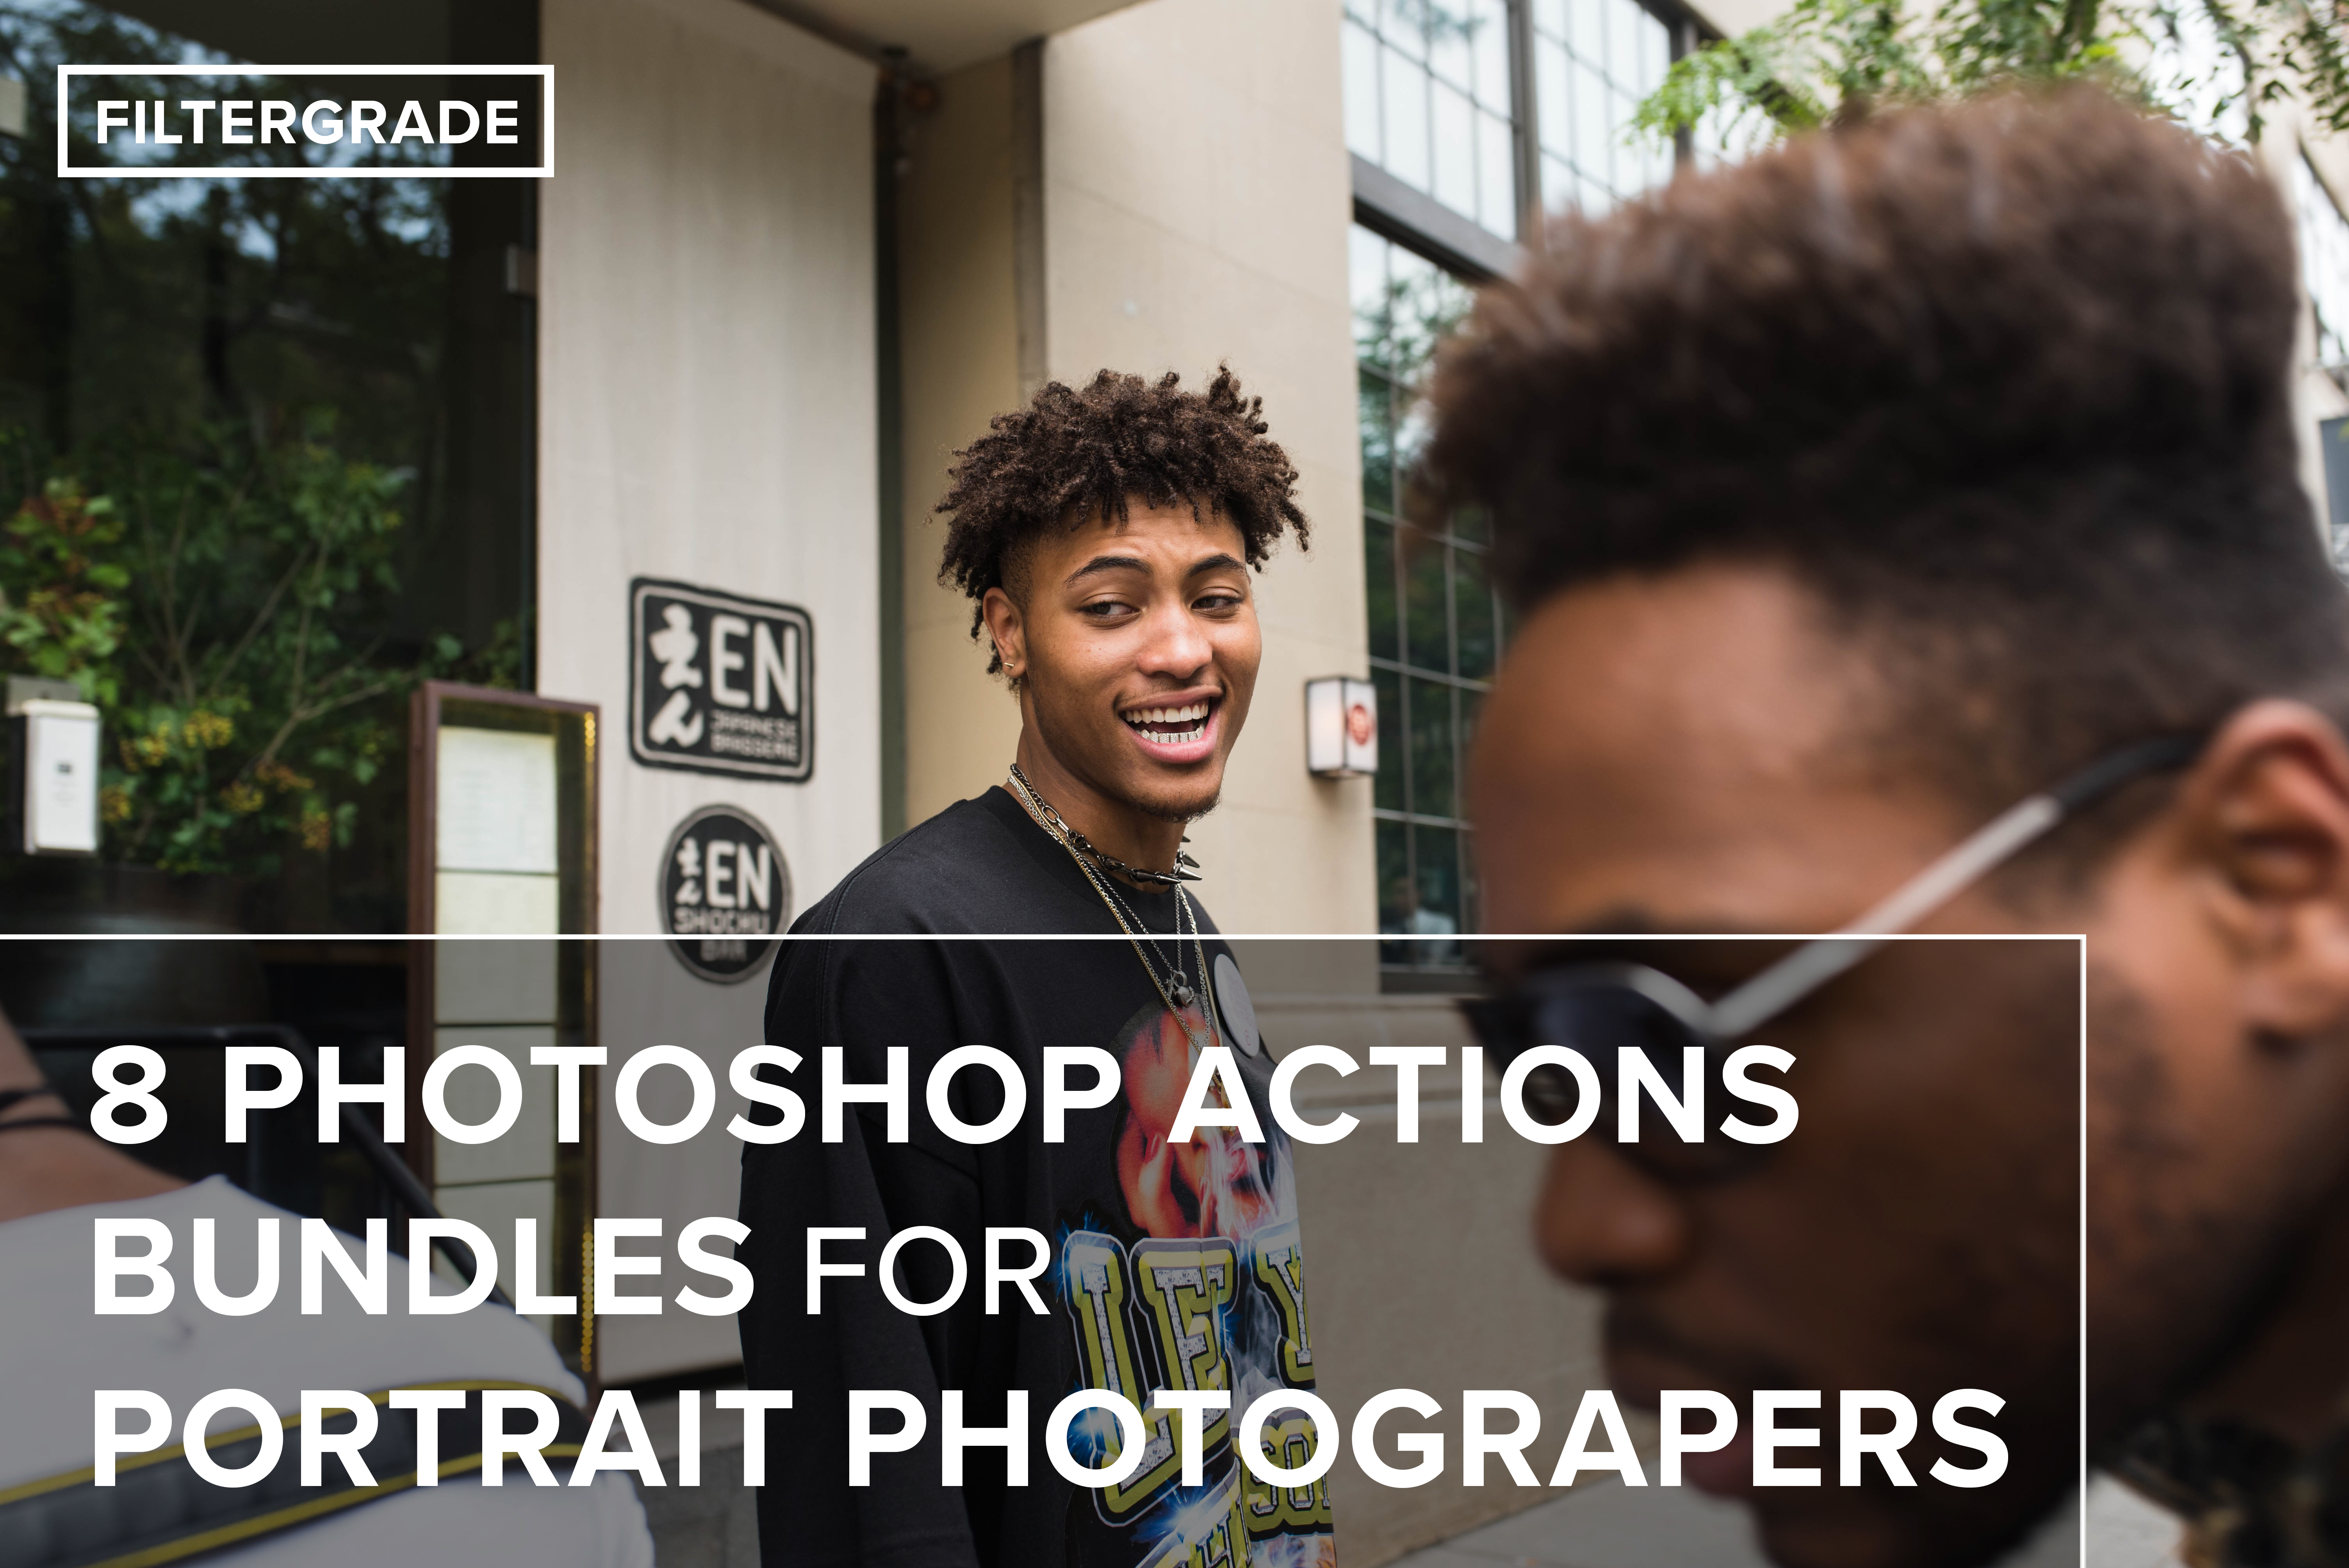 8-Photoshop-Actions-for-Portrait-Photographers-FilterGrade